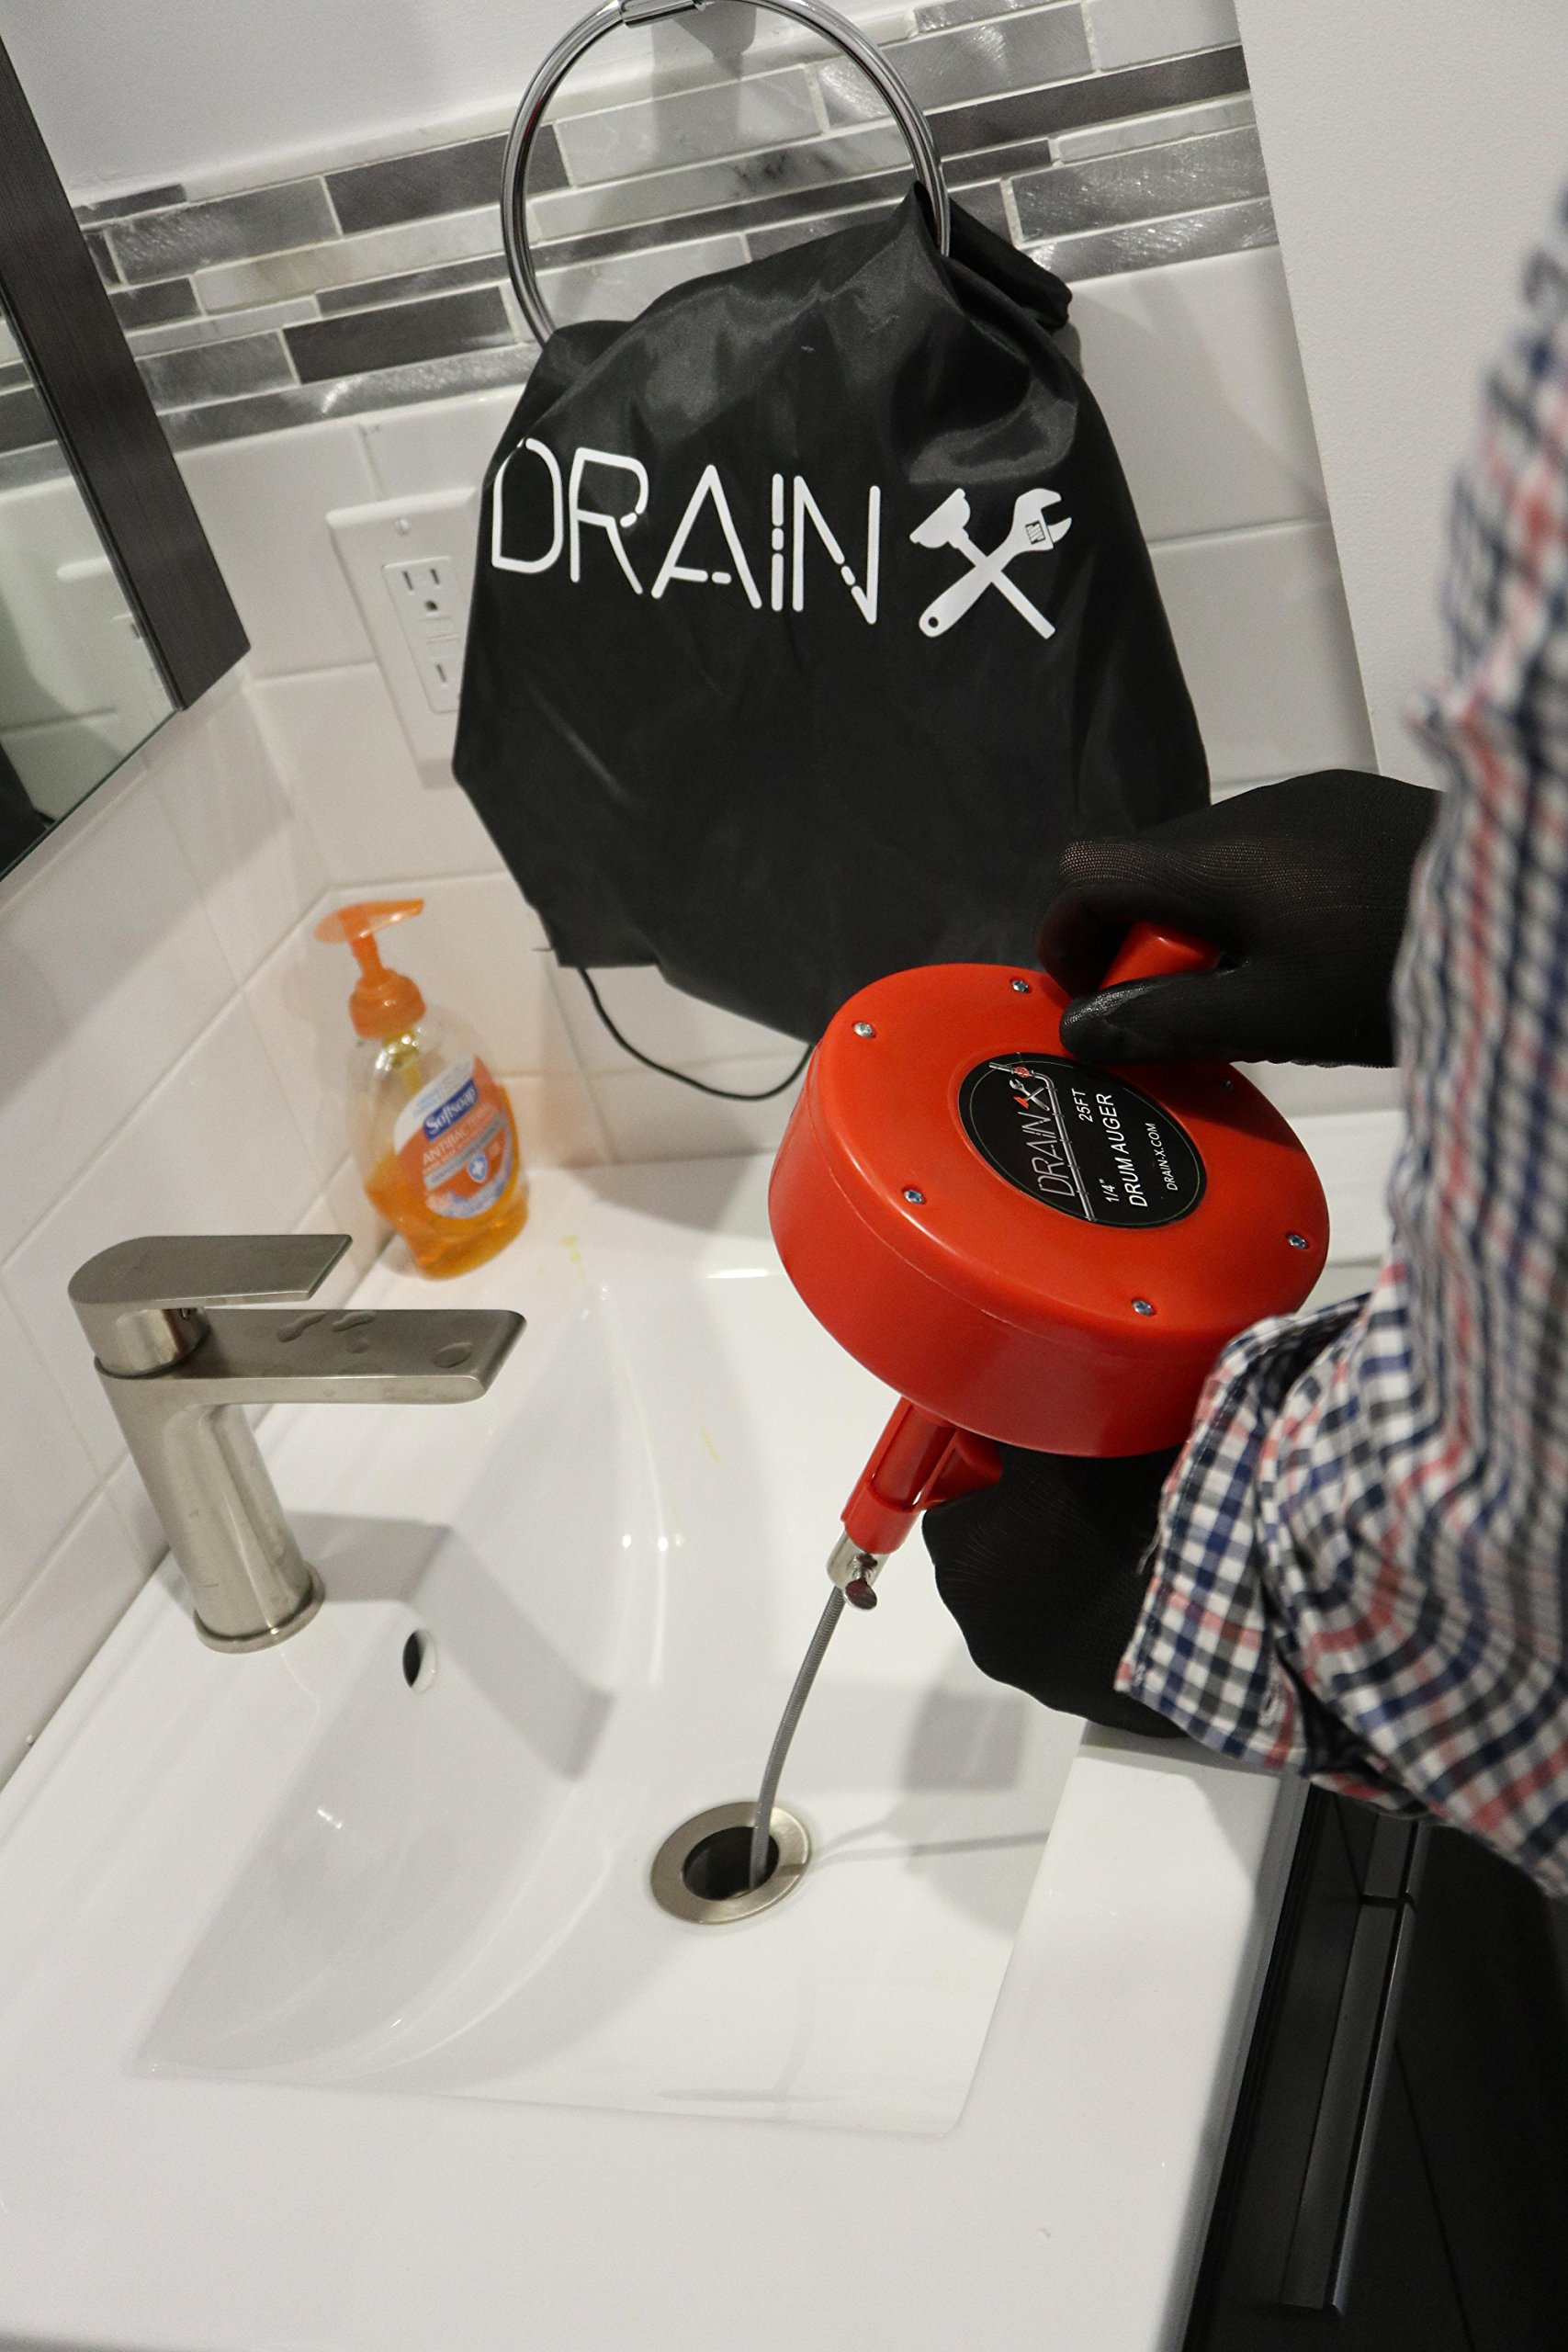 Plumbing Snake Drain Auger | 25-Ft Drain Snake Cable with Work Gloves and Storage Bag by DrainX (Image #9)